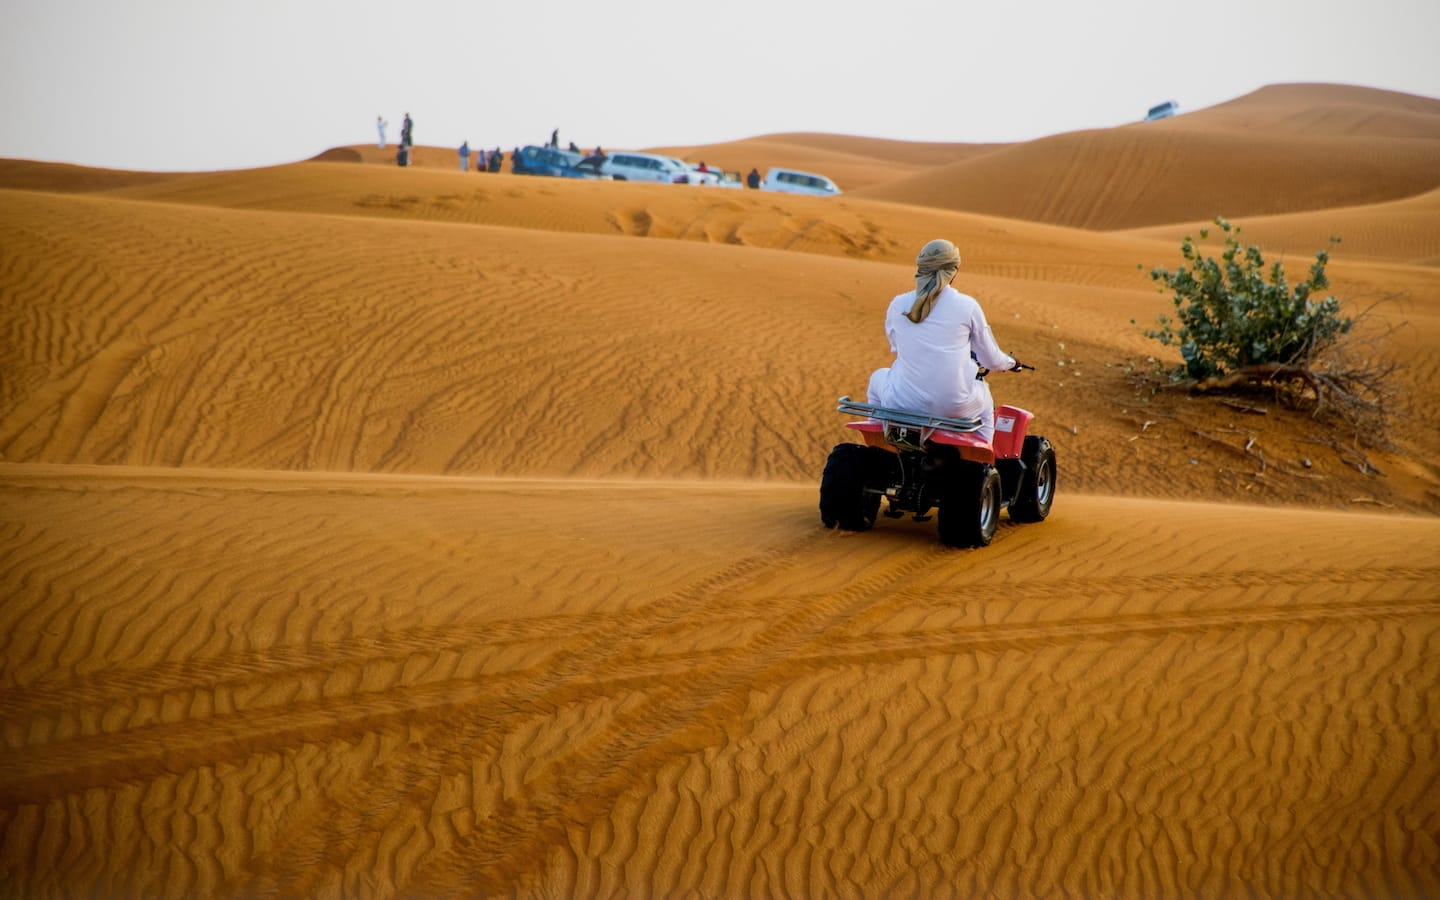 Bashing dunes at the Empty Quarter is another one of the fun free things to do in Abu Dhabi.